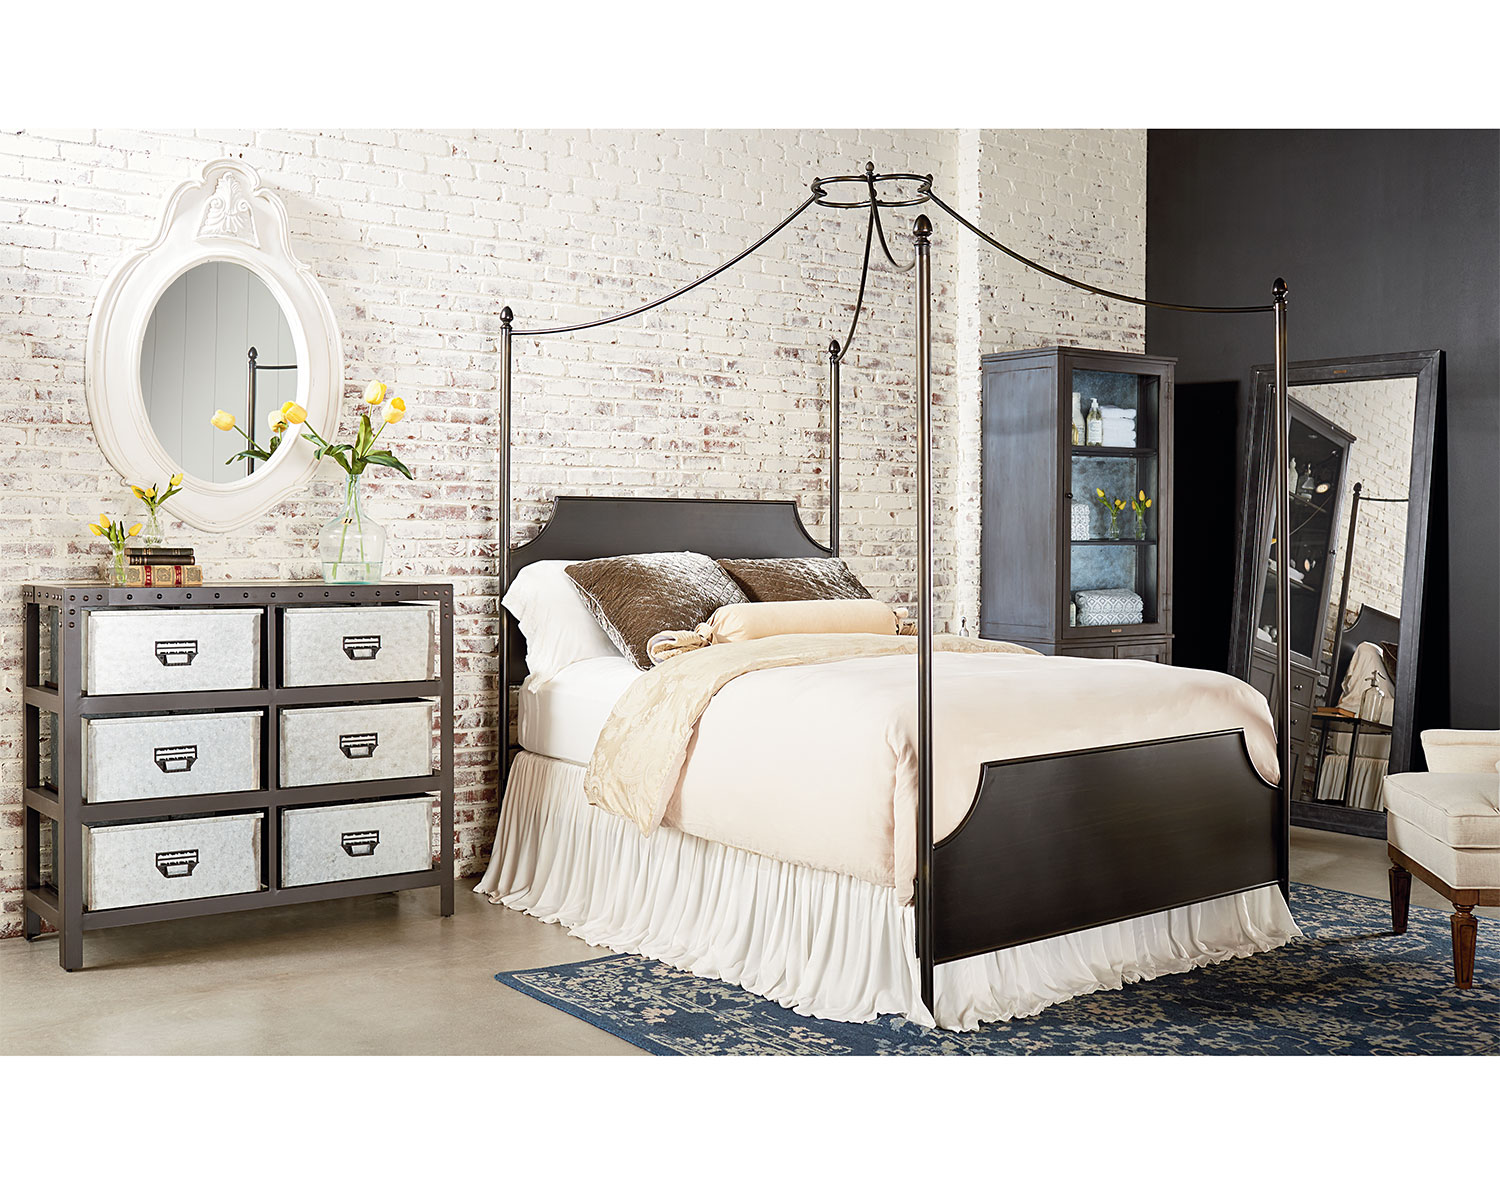 The Traditional Cathedral Canopy Bed Collection